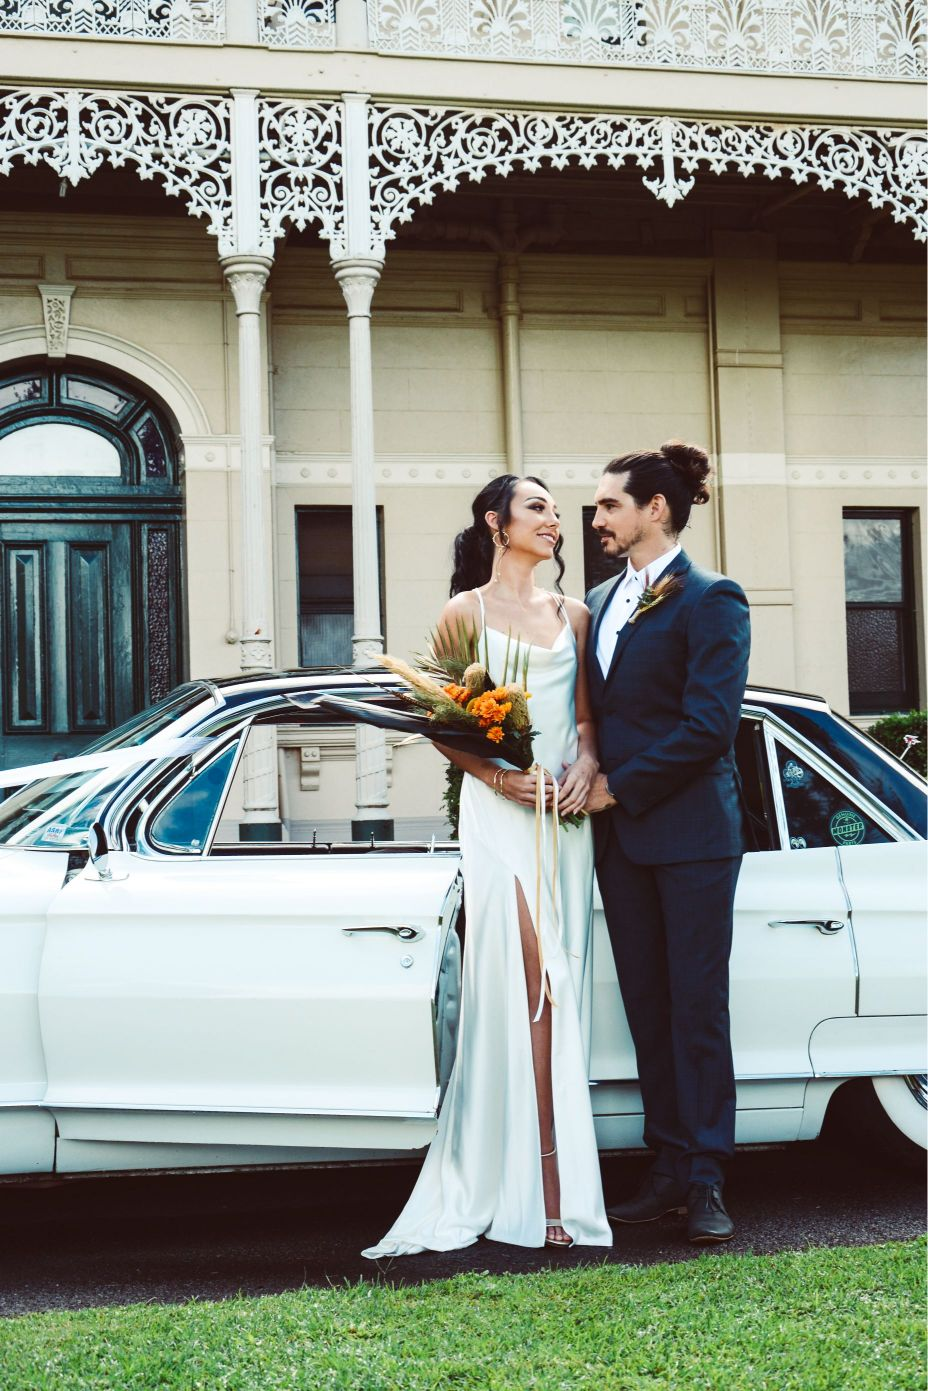 hipster wedding inspiration brisbane beckie g photography to the aisle australia feature 2019 (2).jpg